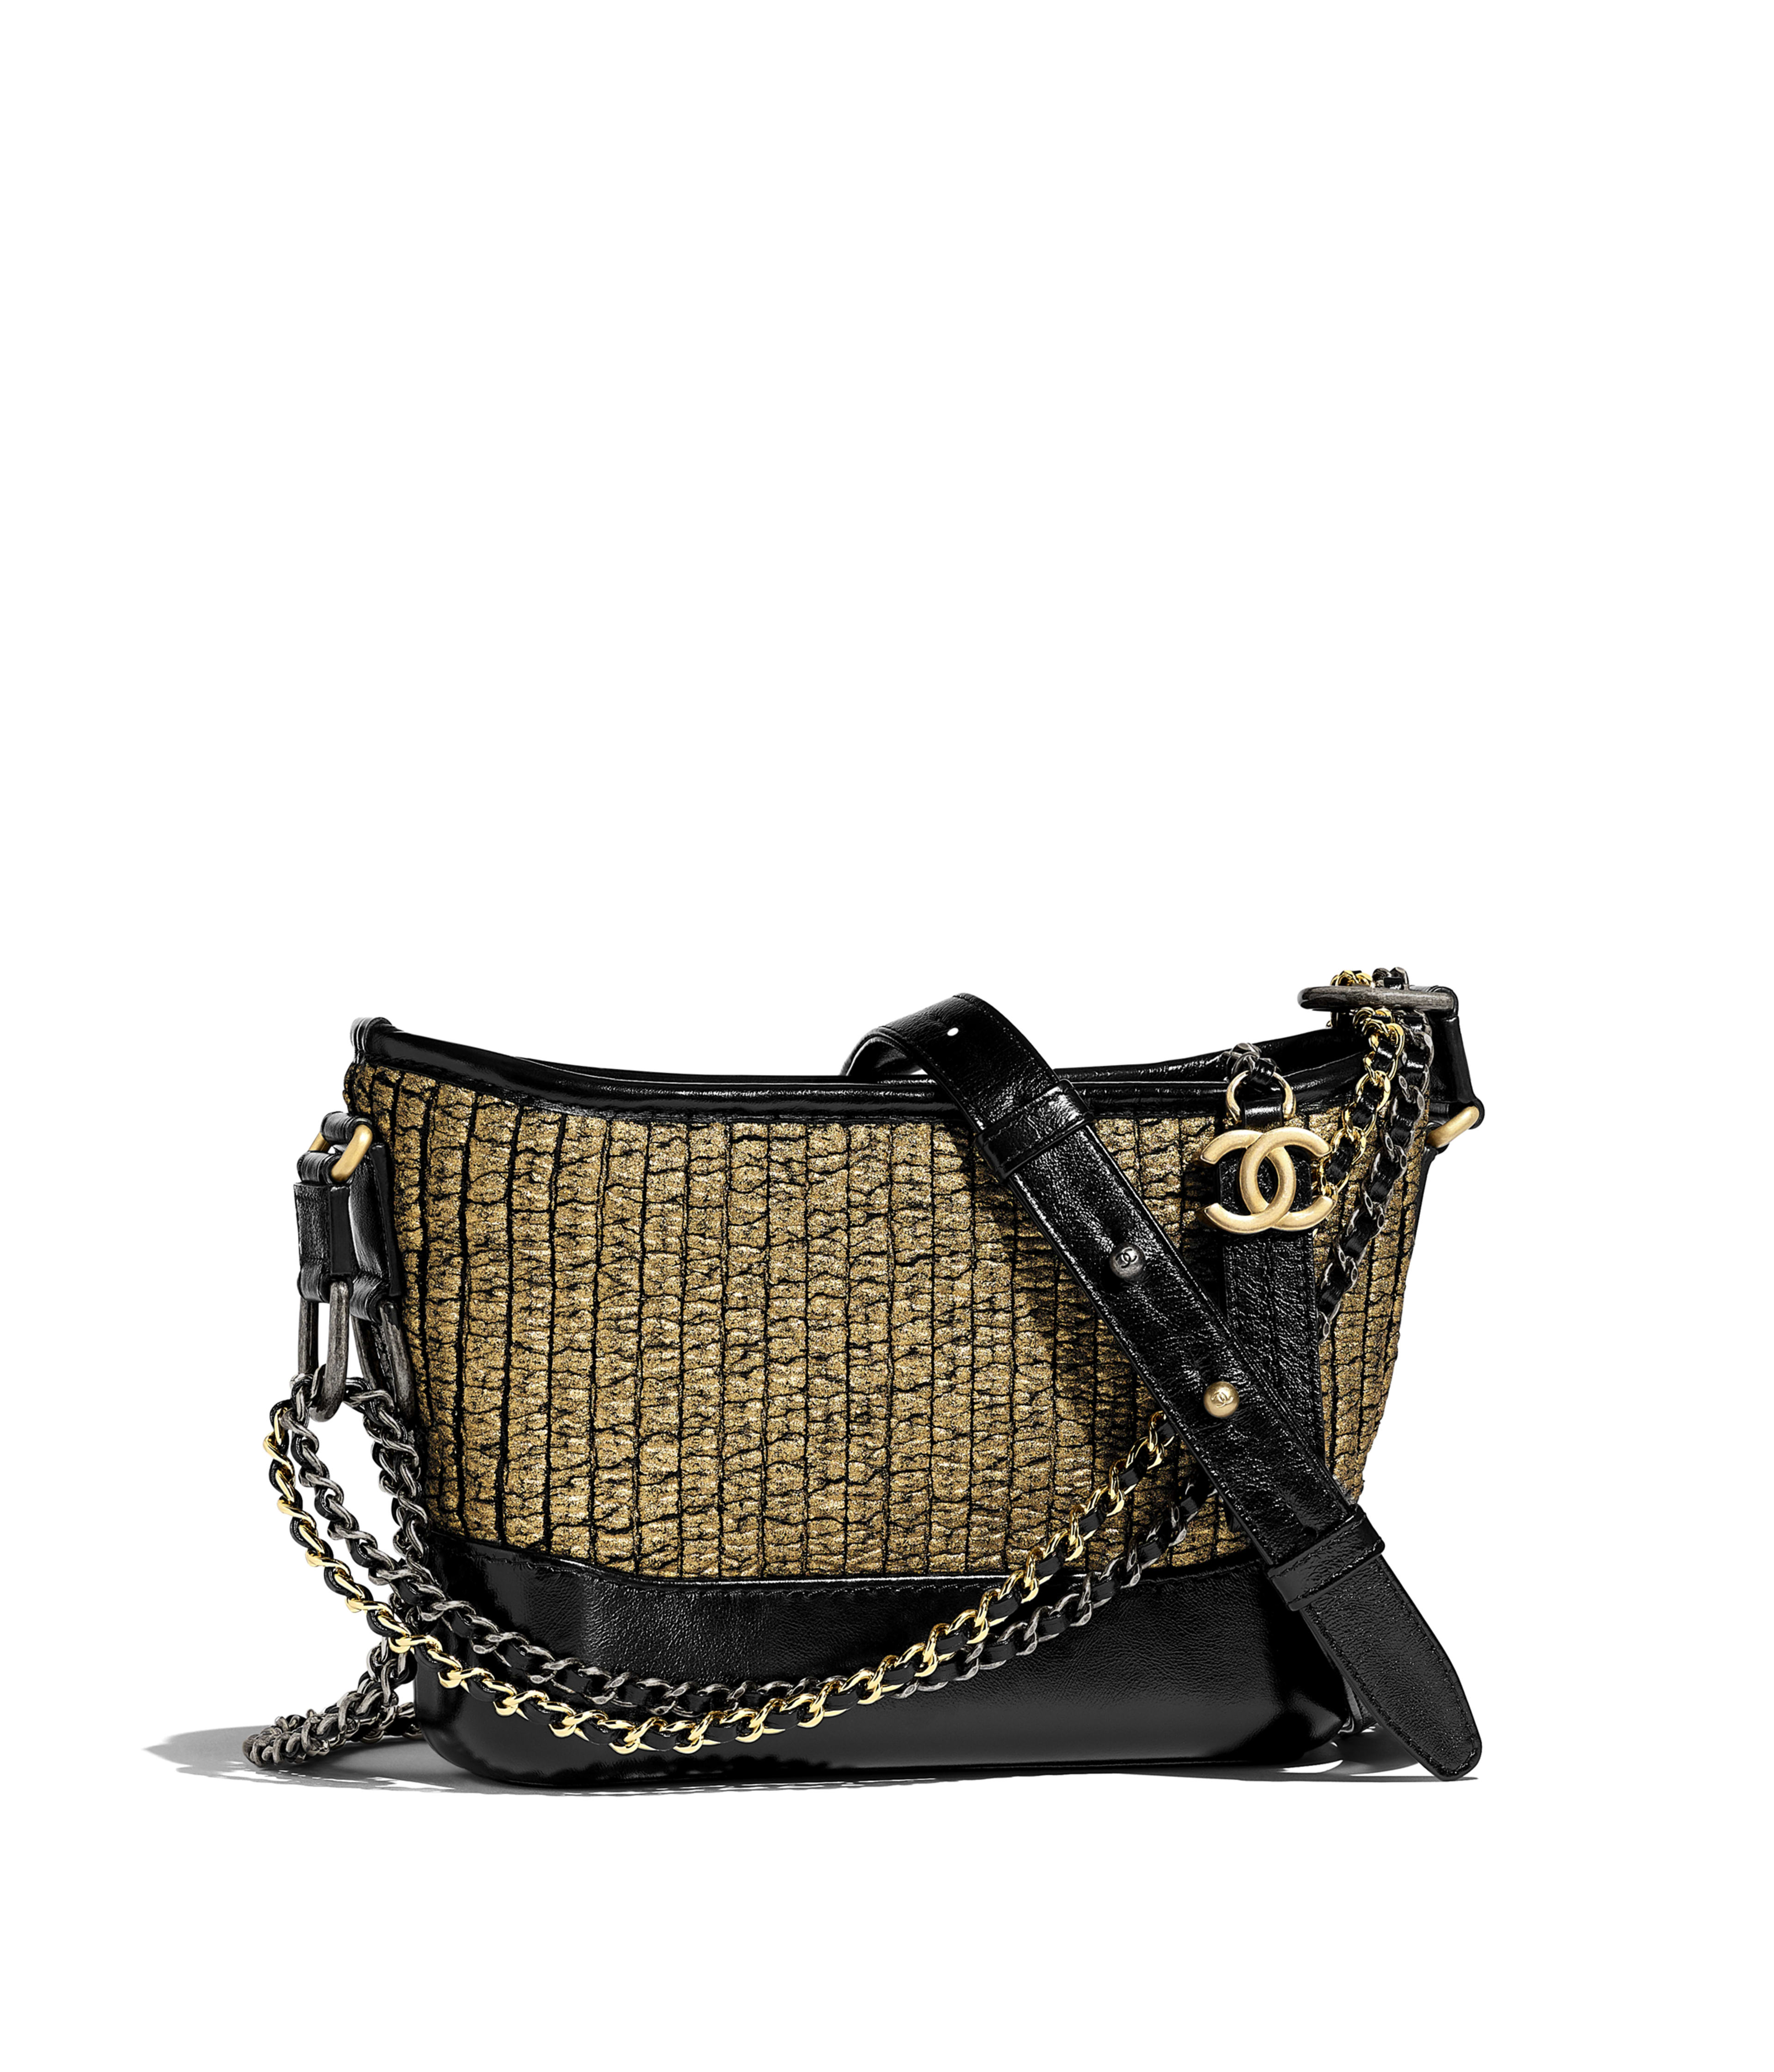 a4845edbaf CHANEL'S GABRIELLE Small Hobo Bag Tweed, Calfskin, Gold-Tone & Silver-Tone  Metal, Gold & Black Ref. A91810B00746N4790